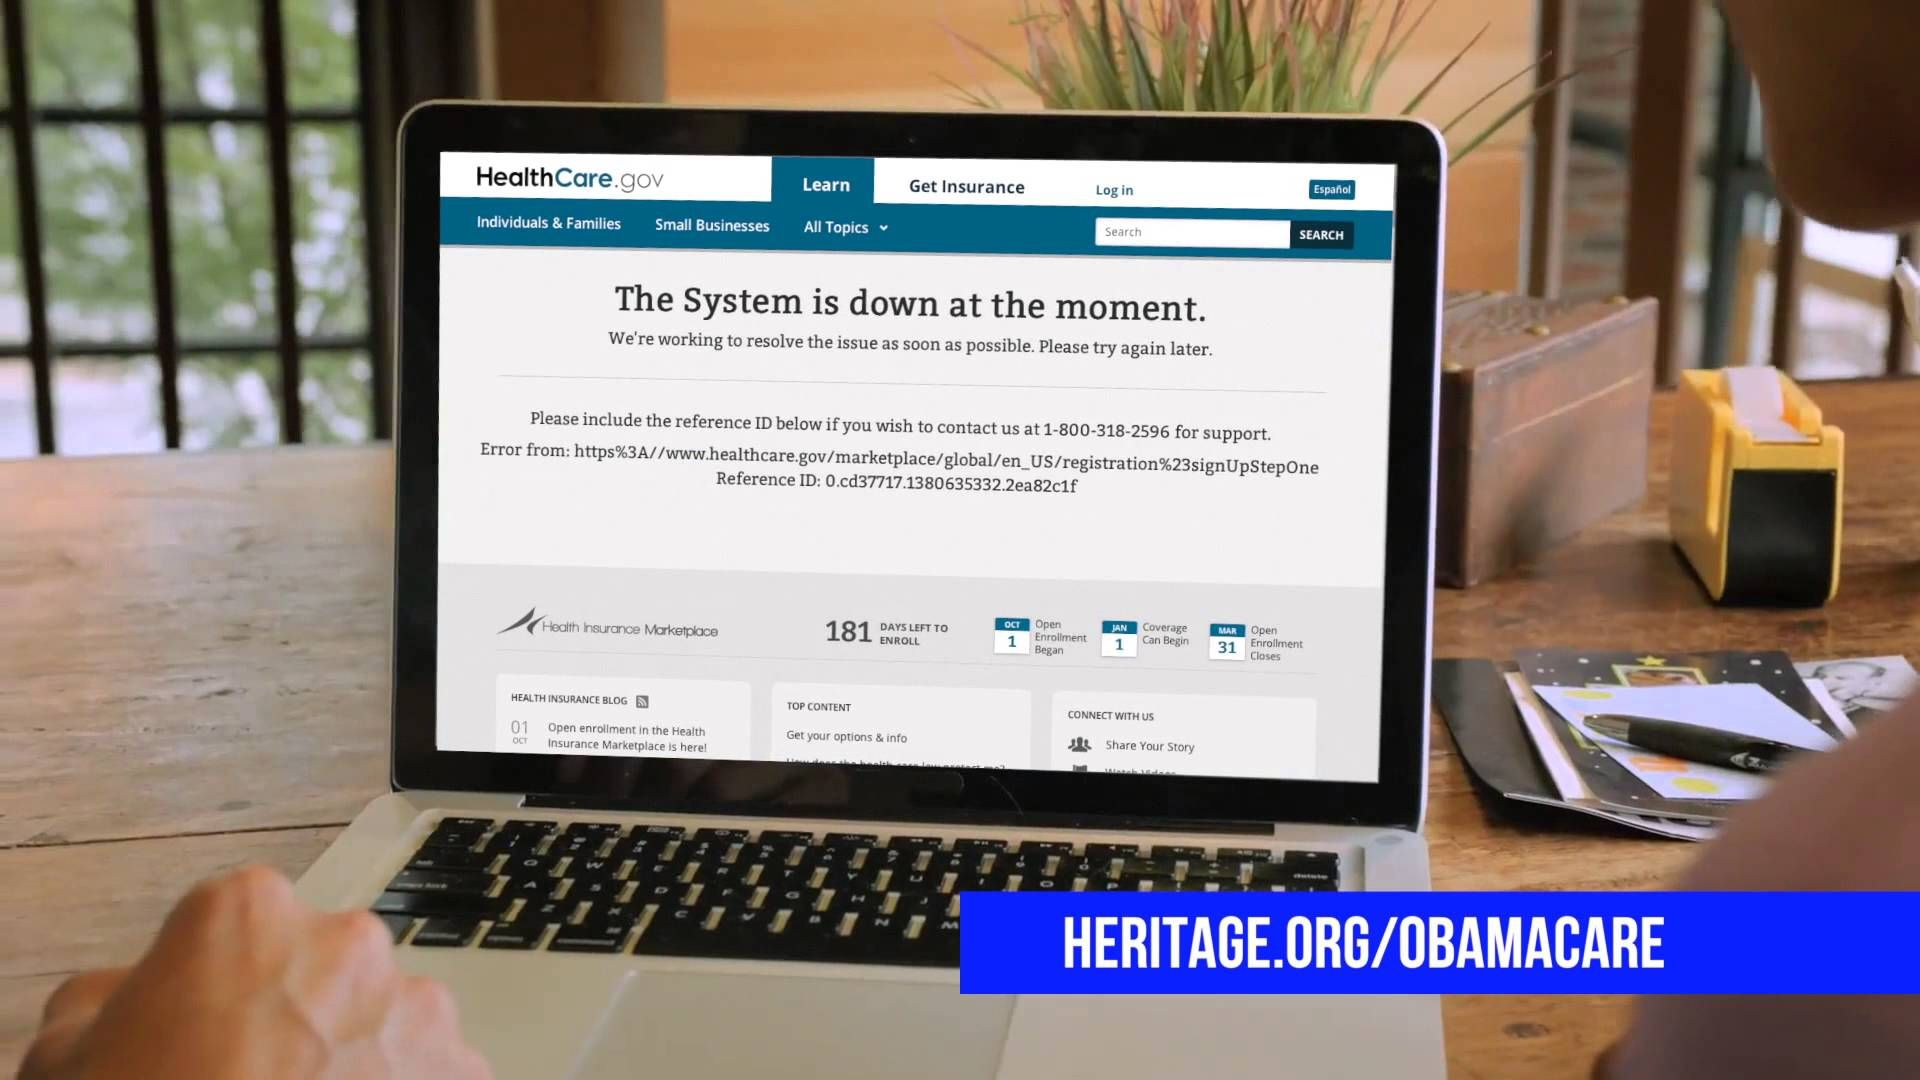 More Than A Glitch Hilarious Yet Scathing Obamacare Ad Parody Obamacare Health Care Parody Videos